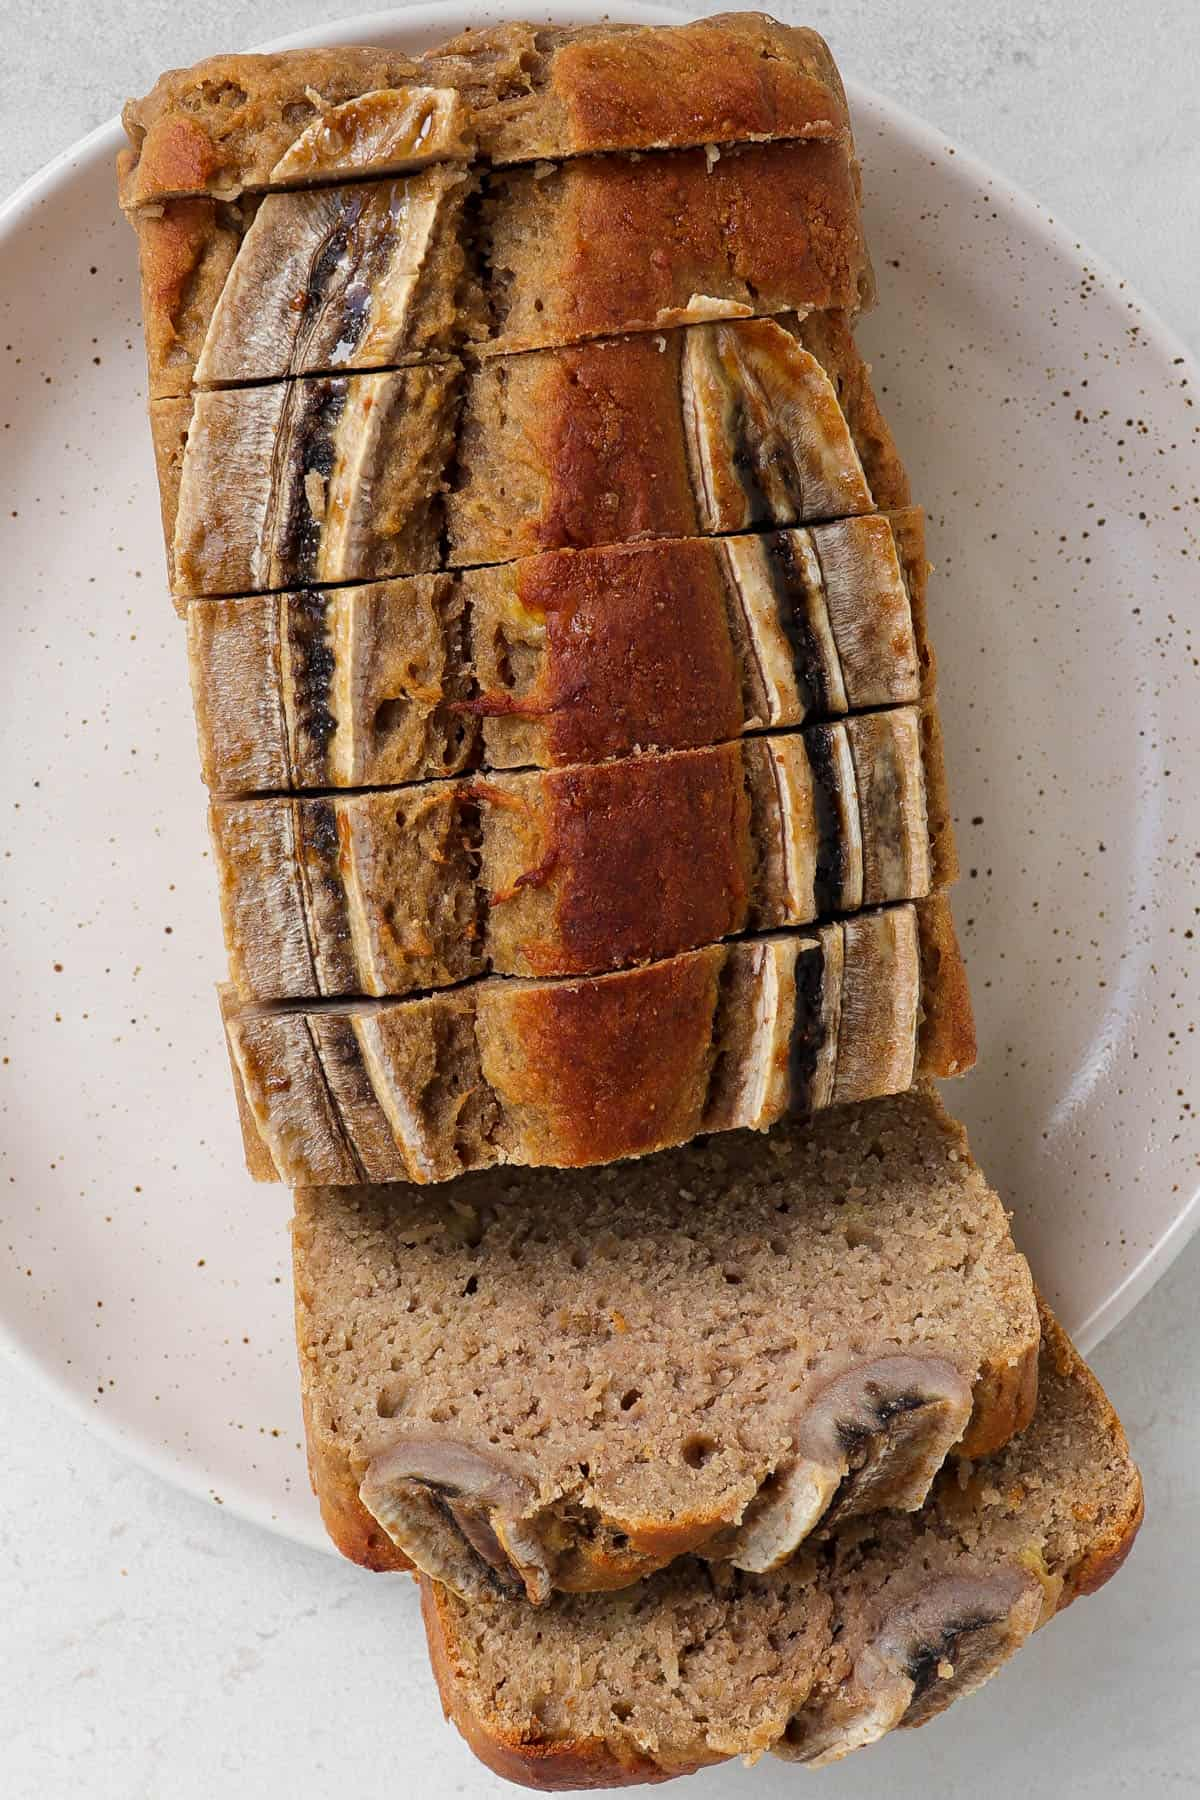 Sliced up buckwheat bread on plate with two slices opened up.